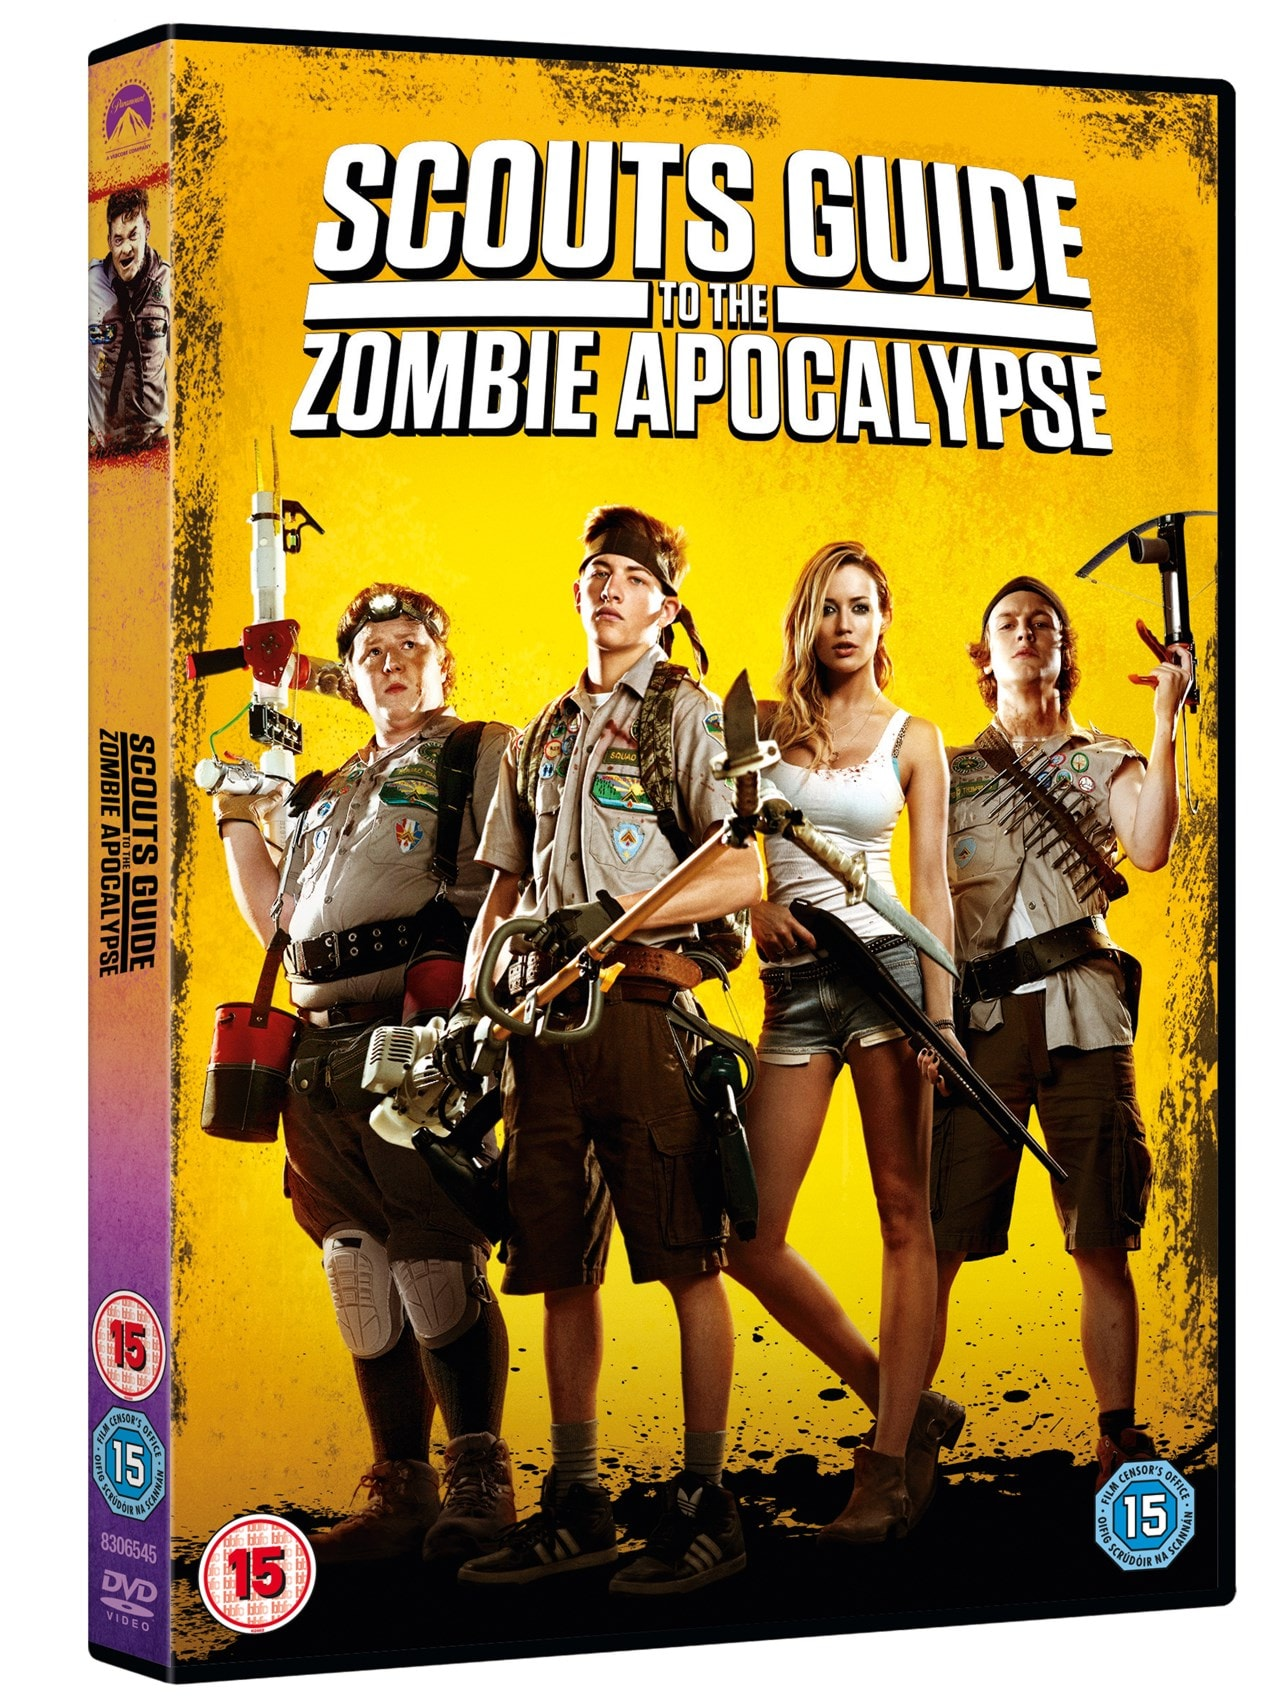 Scouts Guide to the Zombie Apocalypse - 2